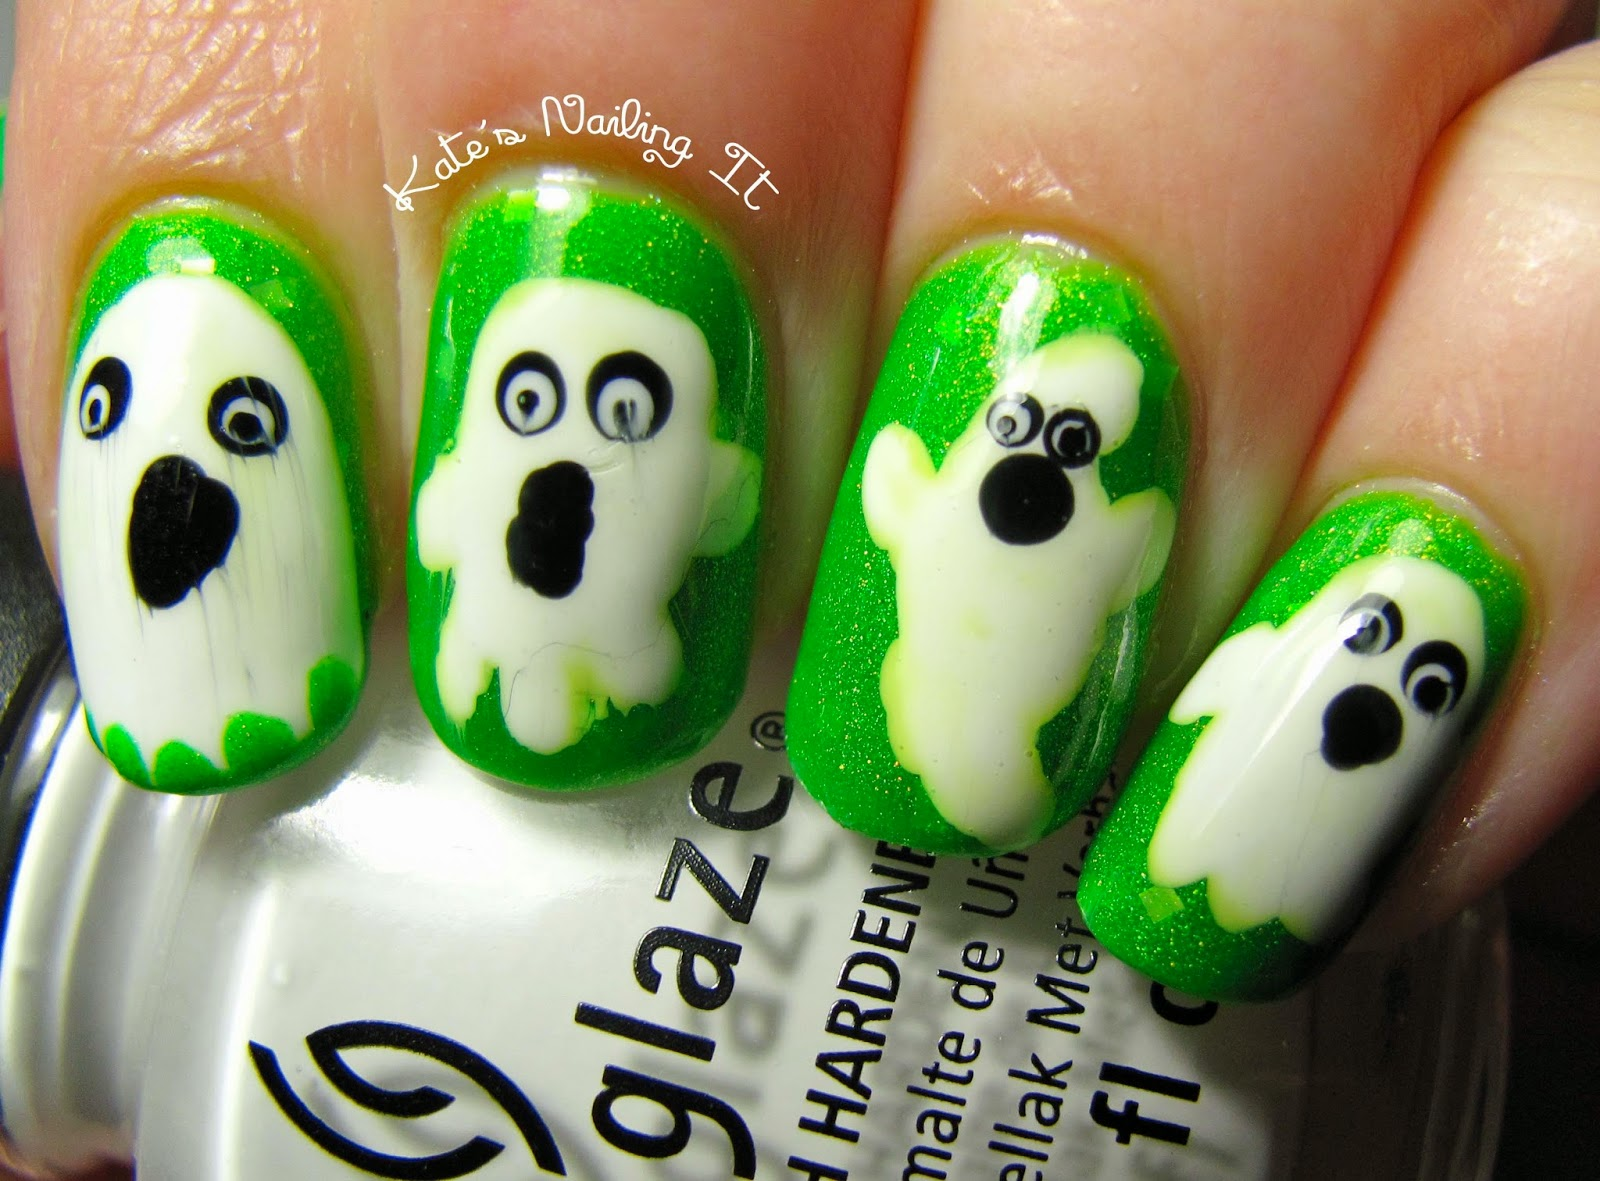 Kates nailing it laidback polish lovers october nail art i used a lot of different nail art tutorials as inspiration for my ghost shapes including ones by naileditnz sarabeautycorner and beautifulyoutv prinsesfo Image collections